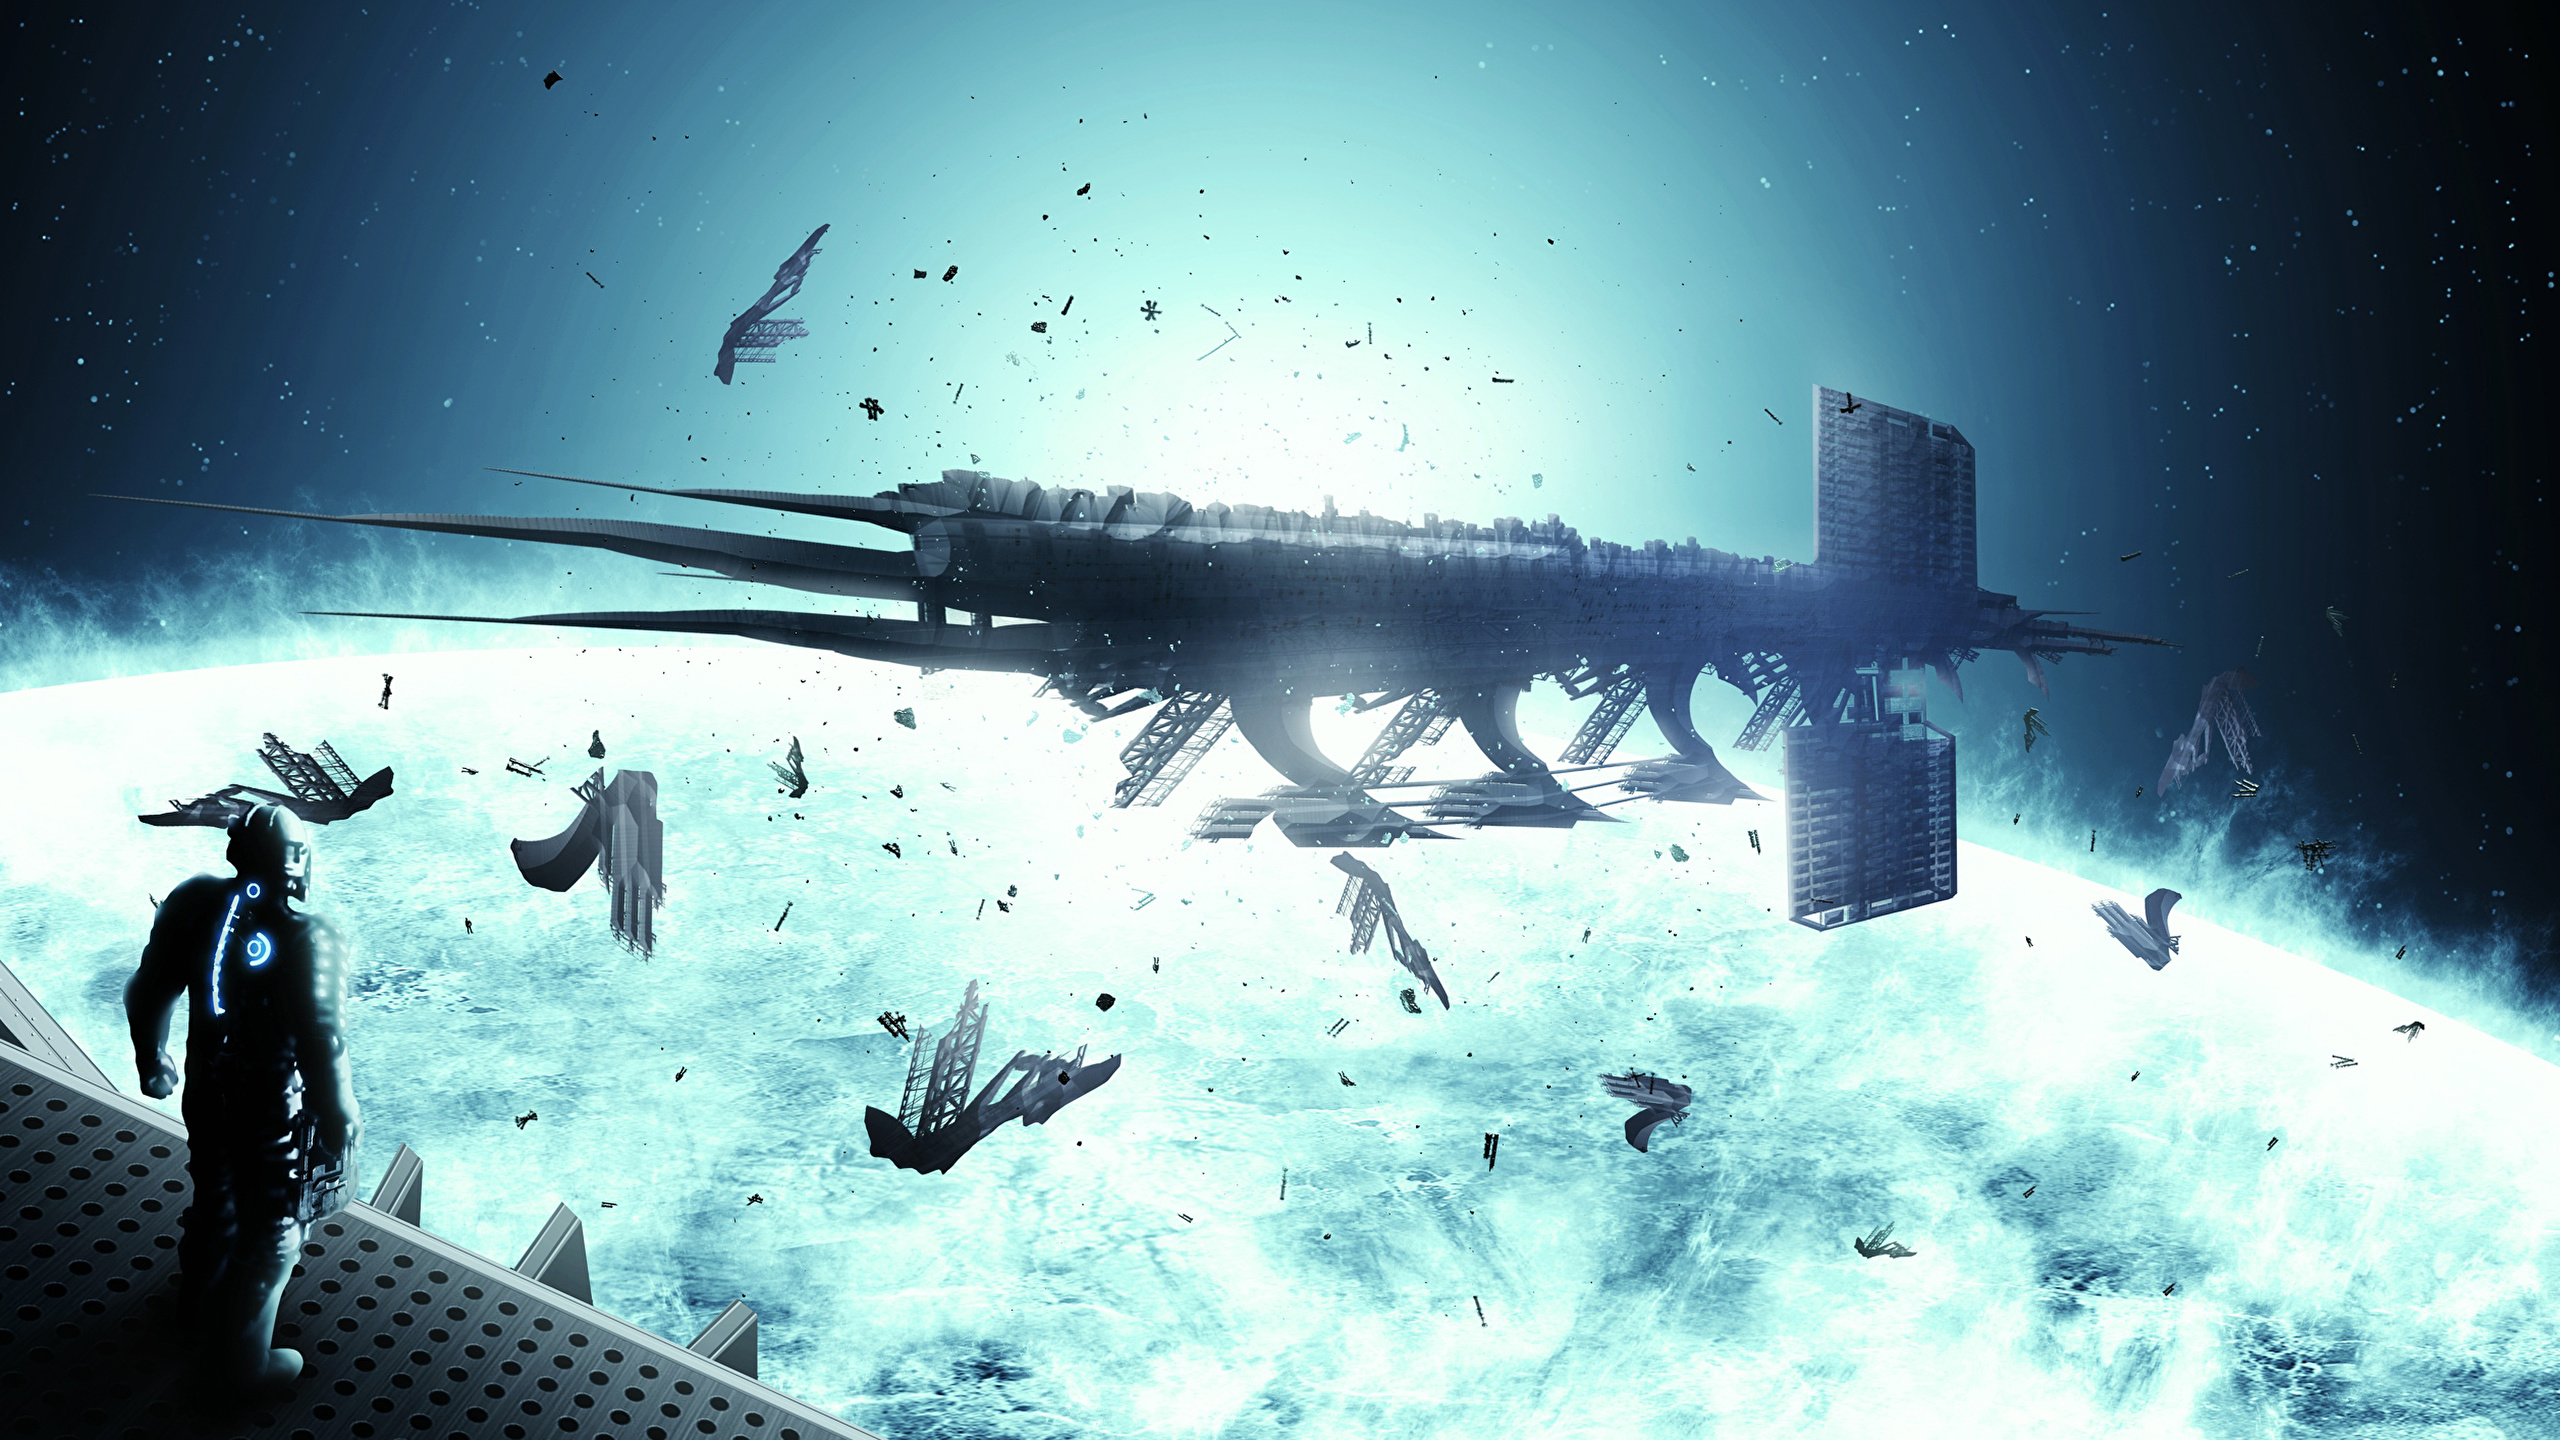 Images Dead Space 3 Space Fantasy Ships Games 2560x1440